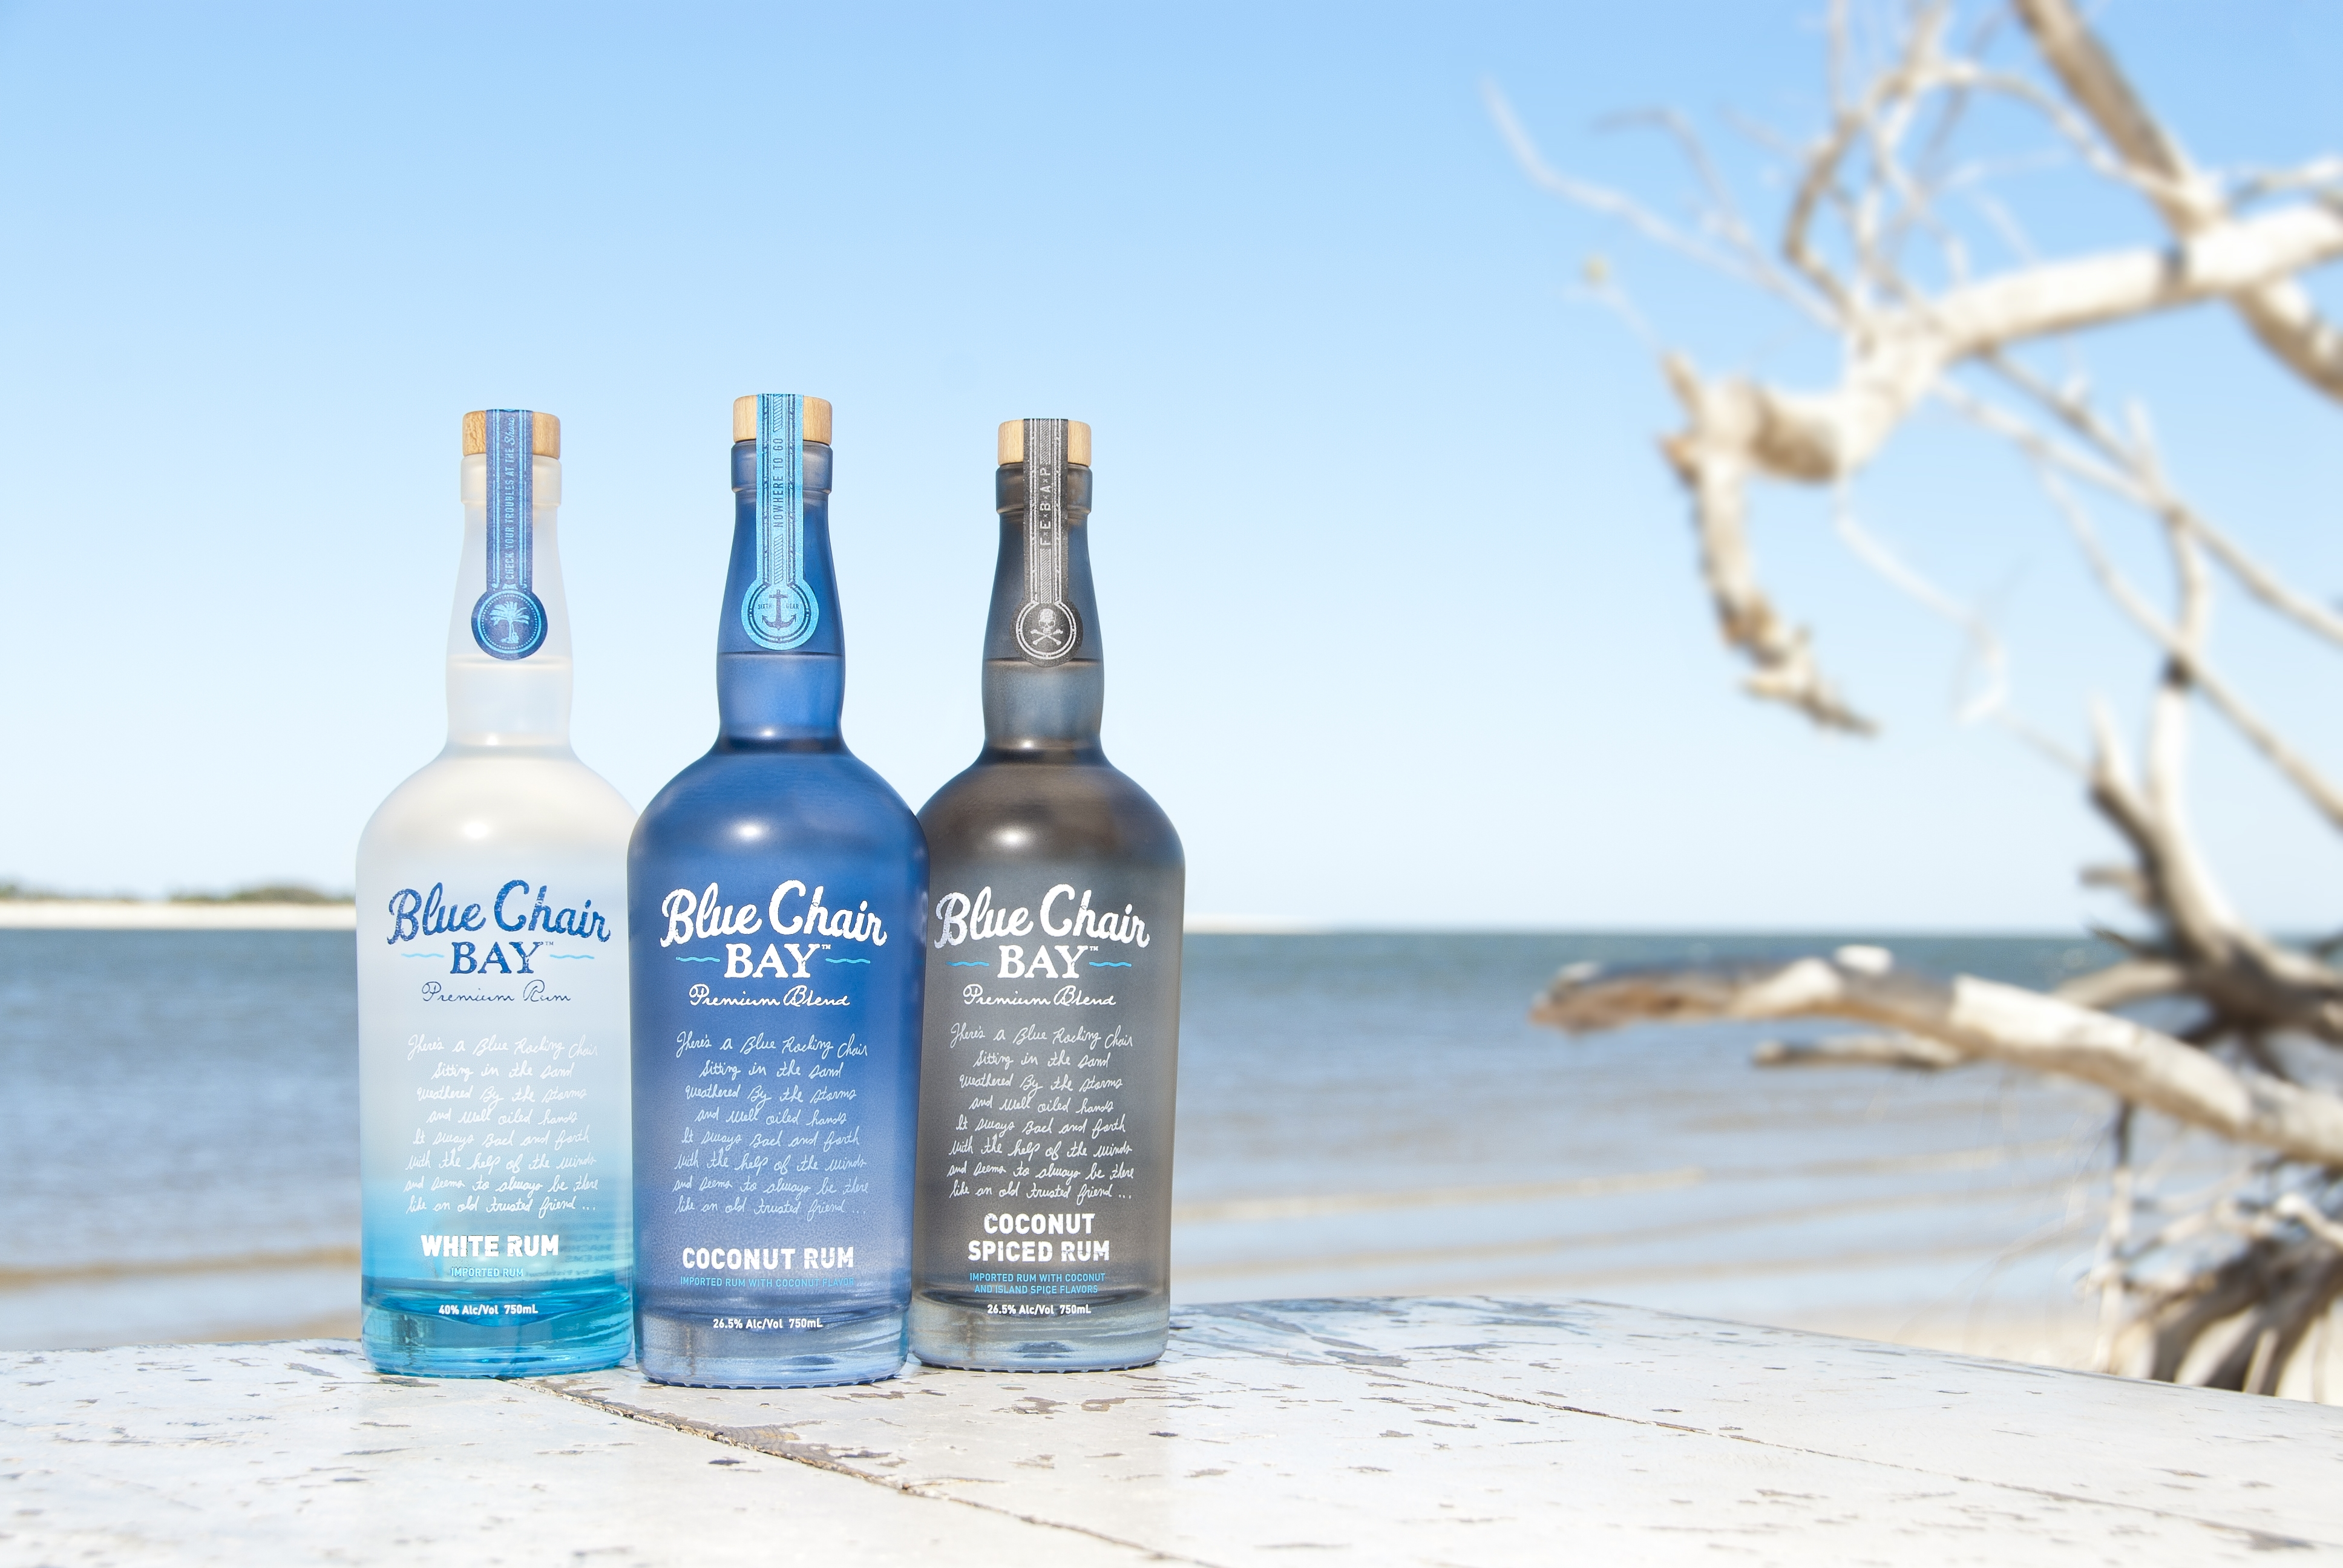 Great ... Blue Chair Bay Rum. Since ...